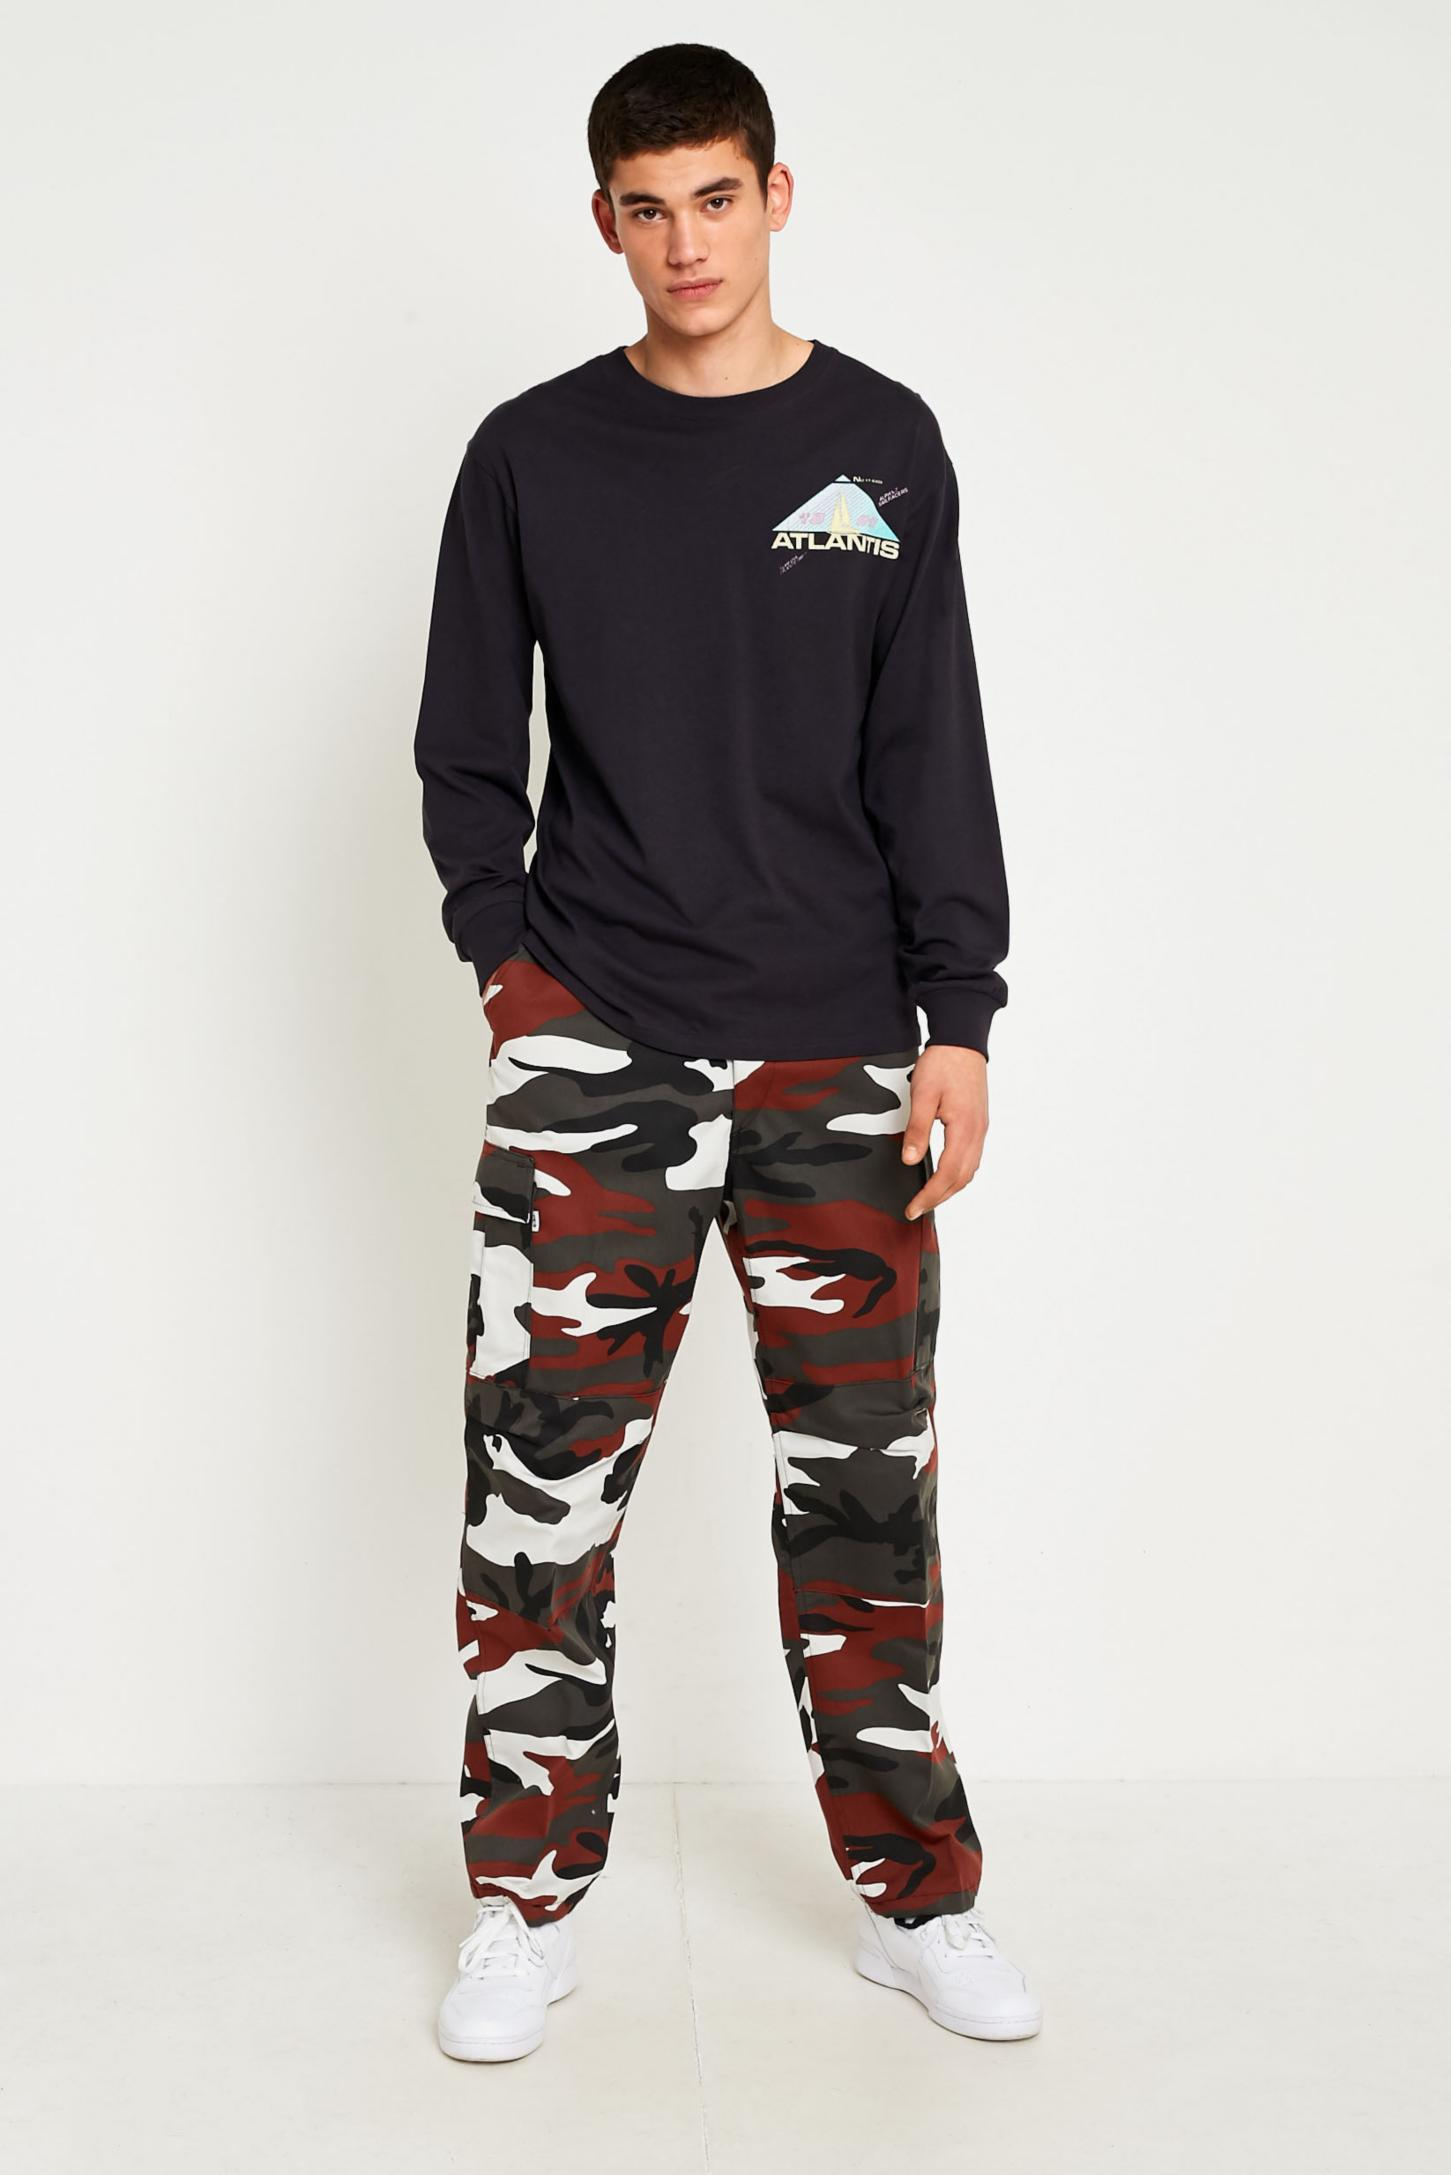 Urban Renewal Vintage Originals Red Camo Trousers